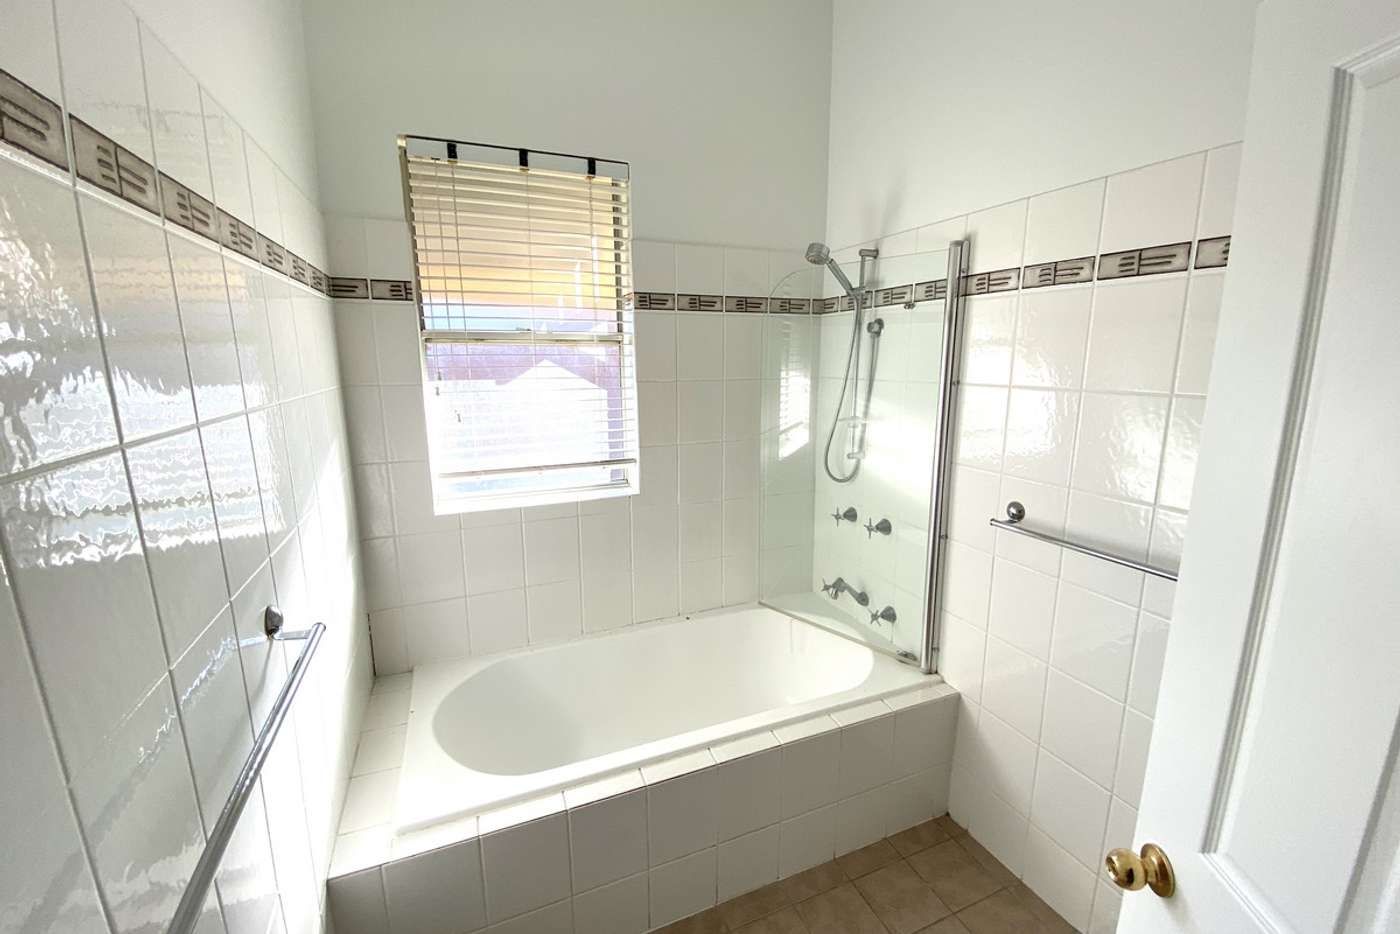 Seventh view of Homely house listing, 42 Meurant Avenue, Wagga Wagga NSW 2650